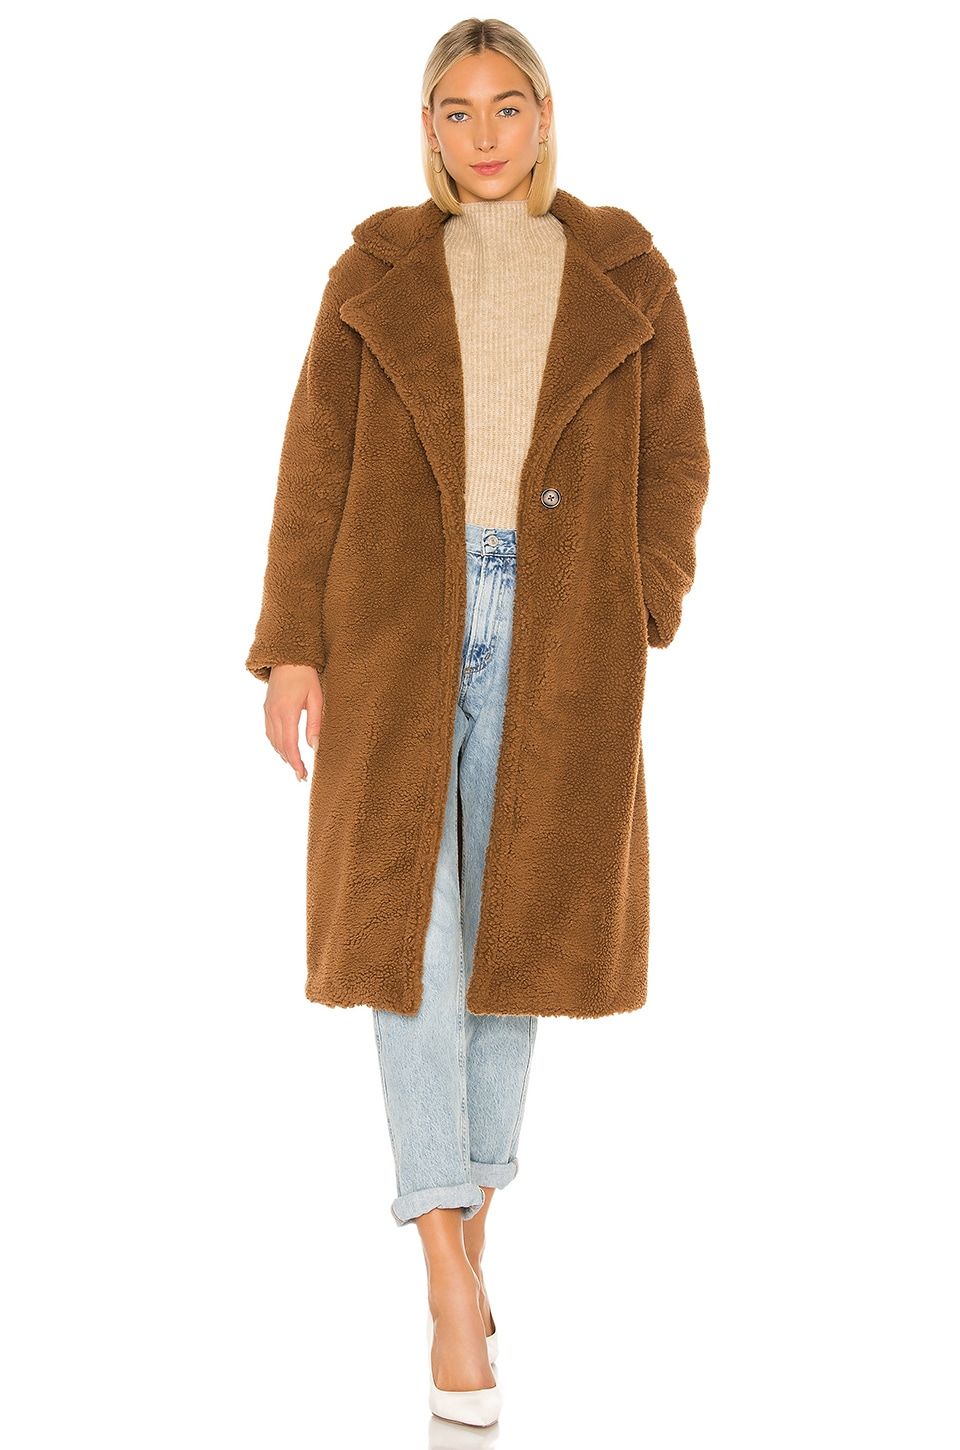 BB Dakota Paddington Teddy Coat in Coco Brown